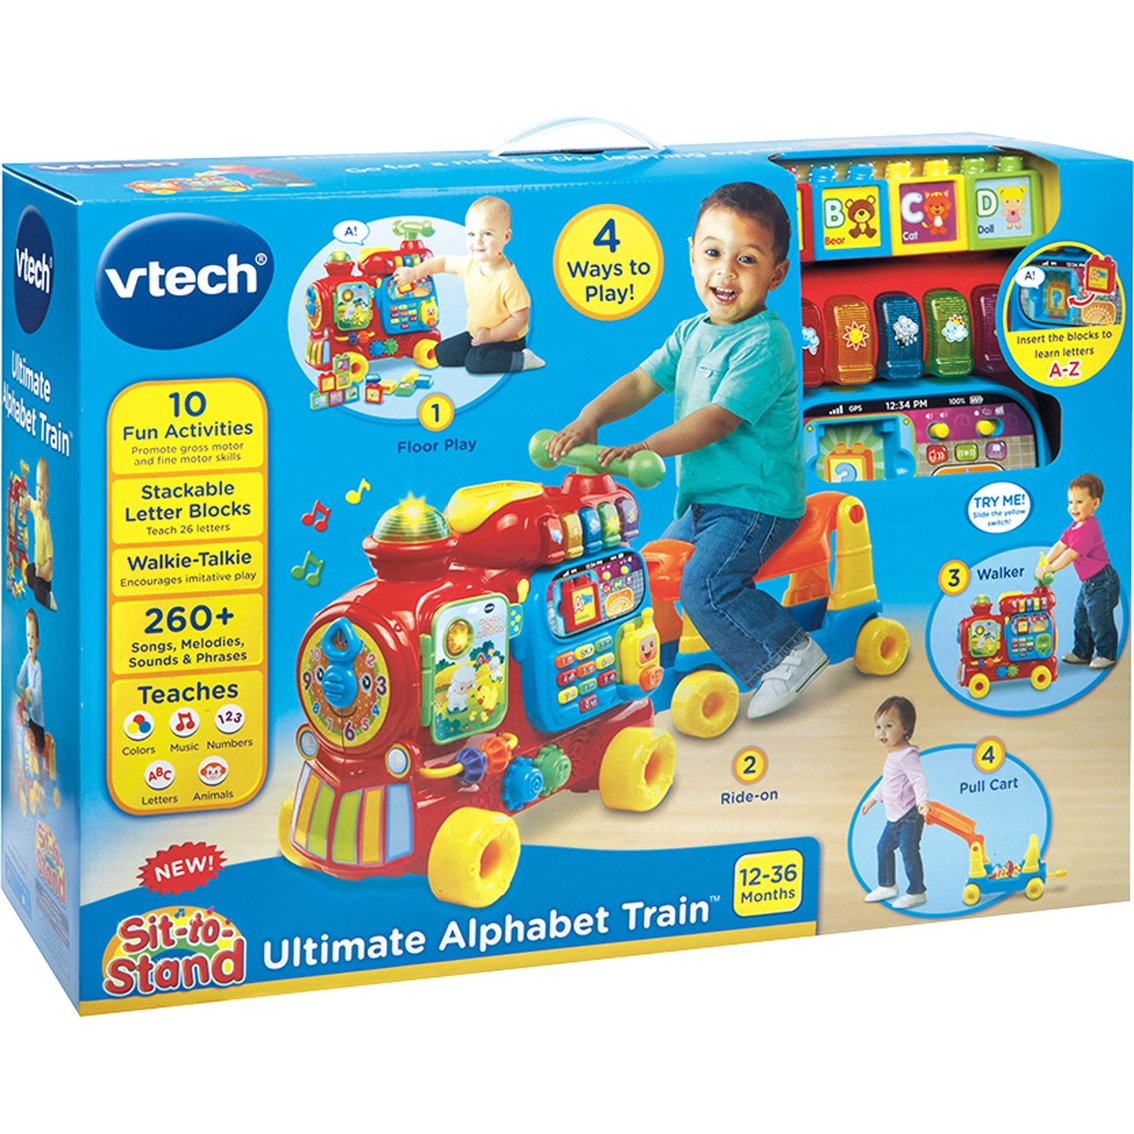 Vtech Sit-to-stand Ultimate Alphabet Train | Learning